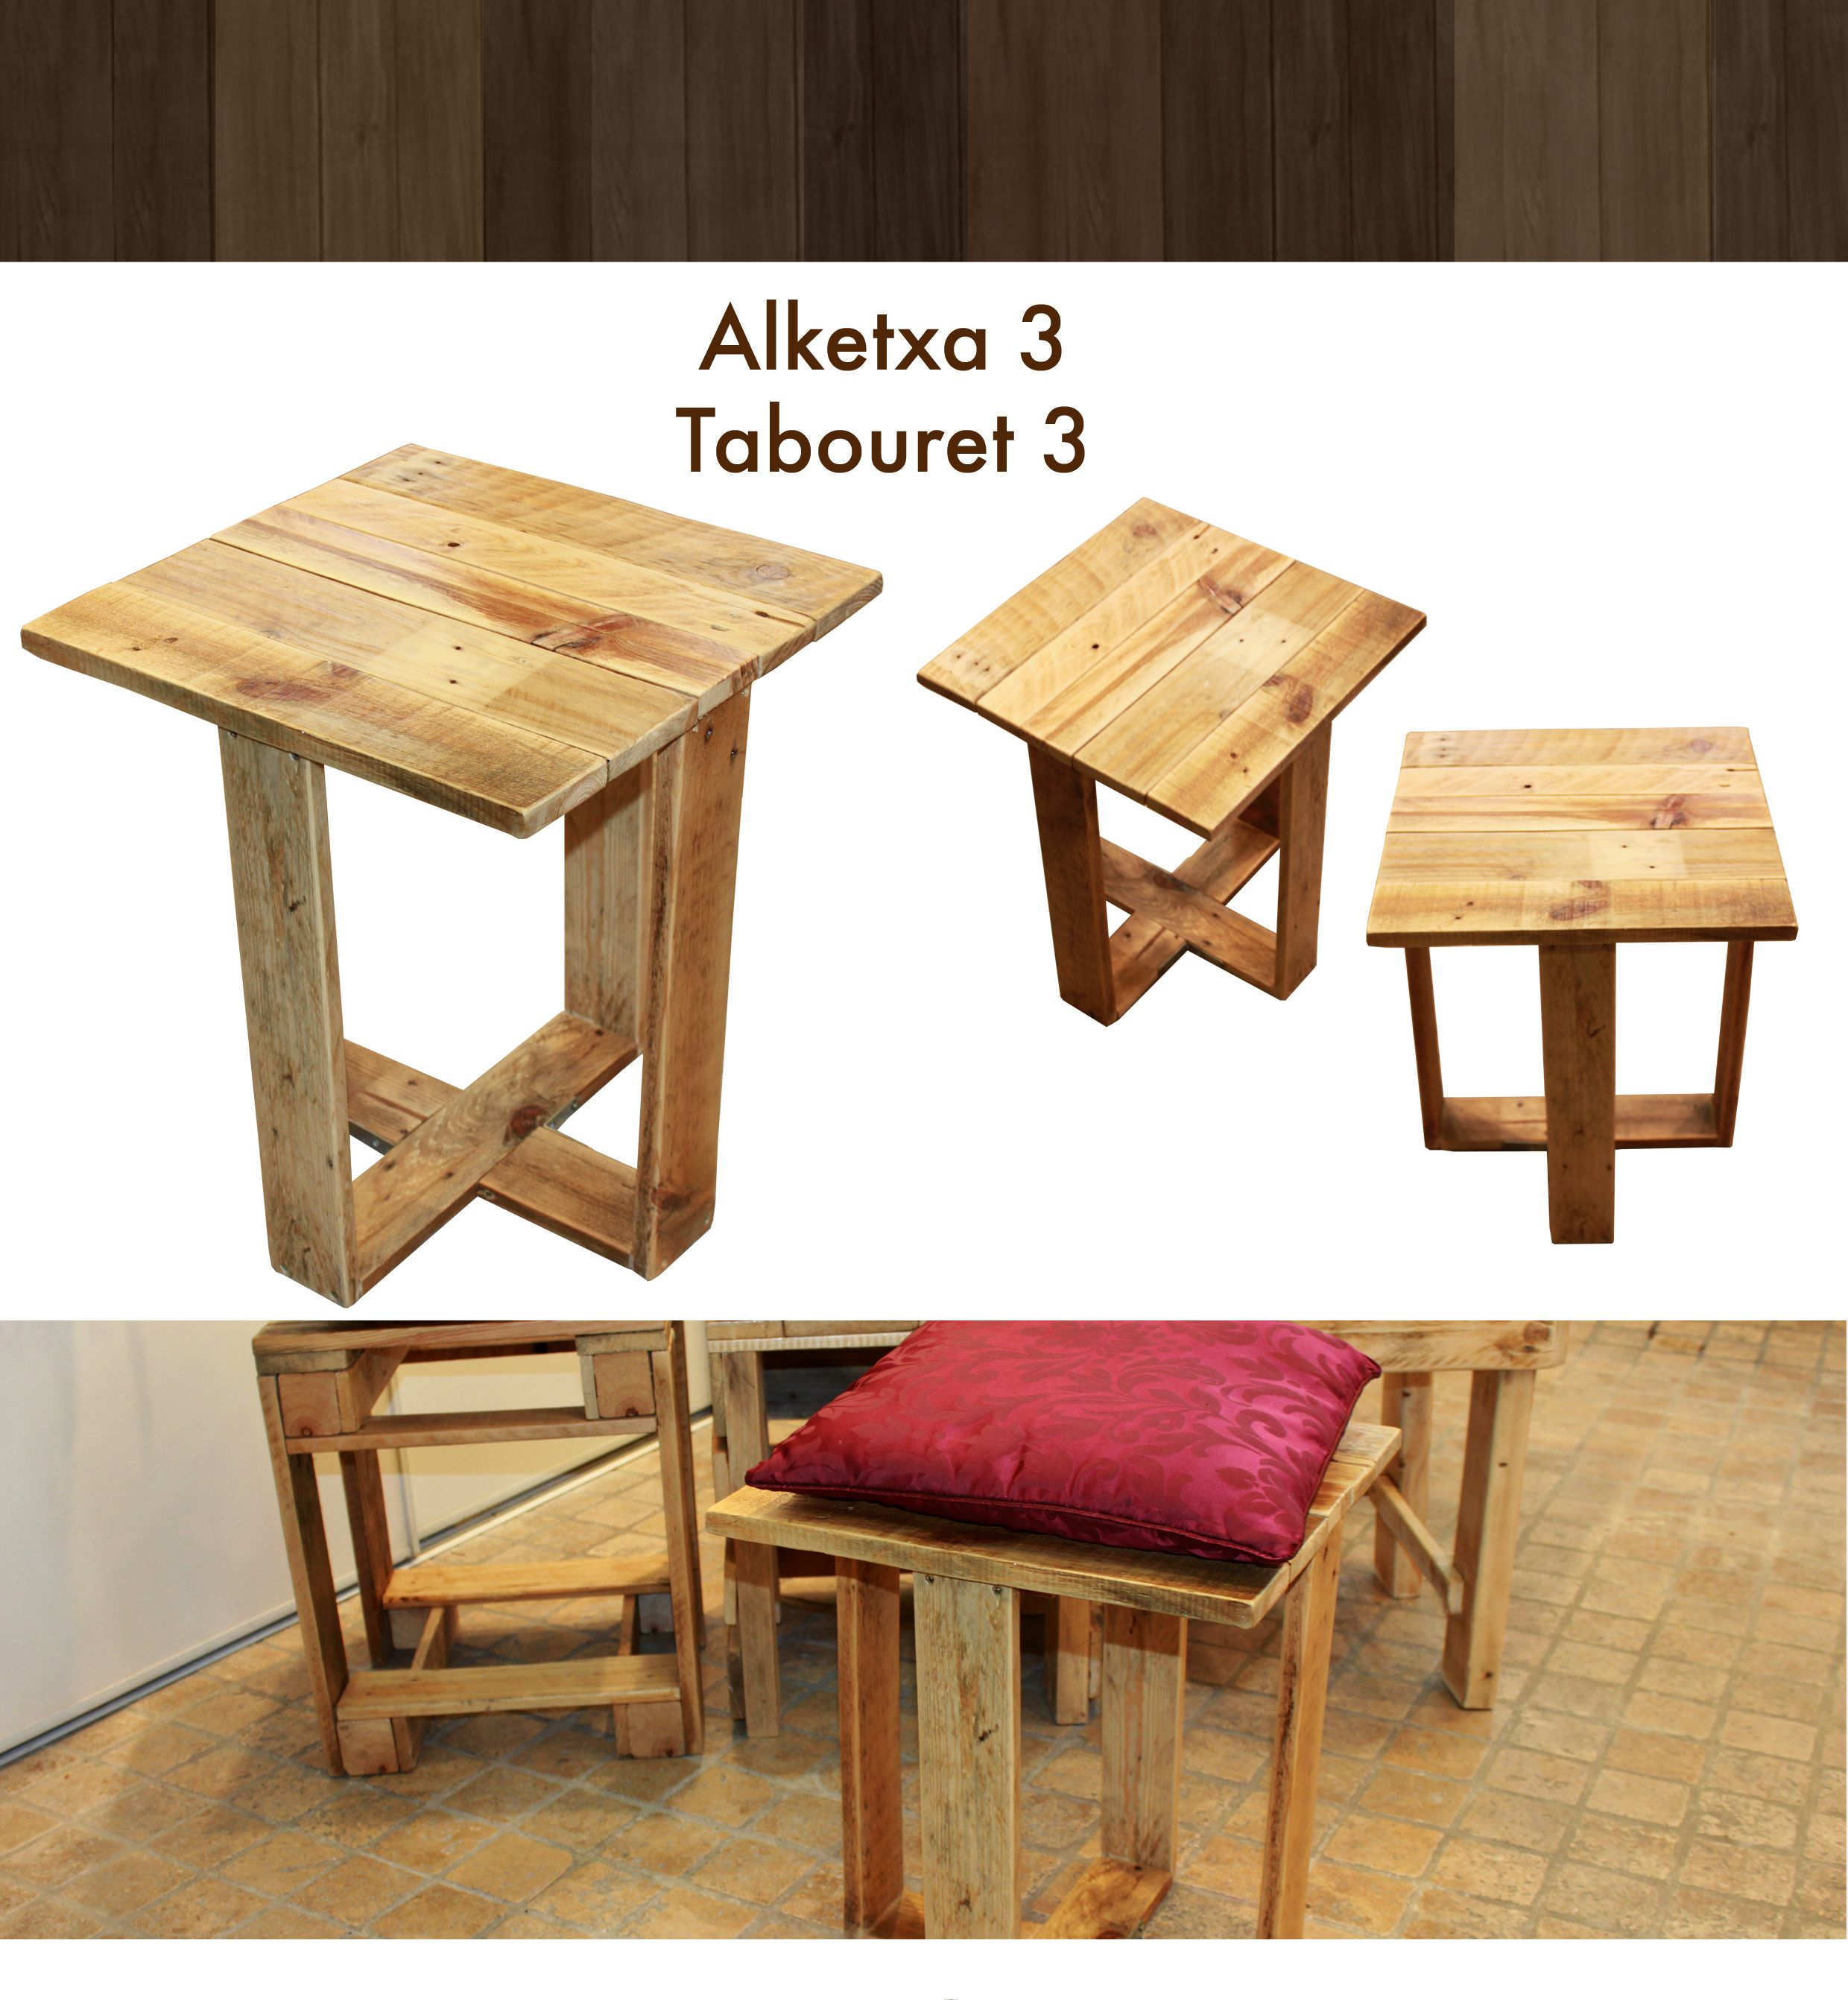 tabouret design en bois de palette les meubles en palette de martxuka pinterest tabouret. Black Bedroom Furniture Sets. Home Design Ideas